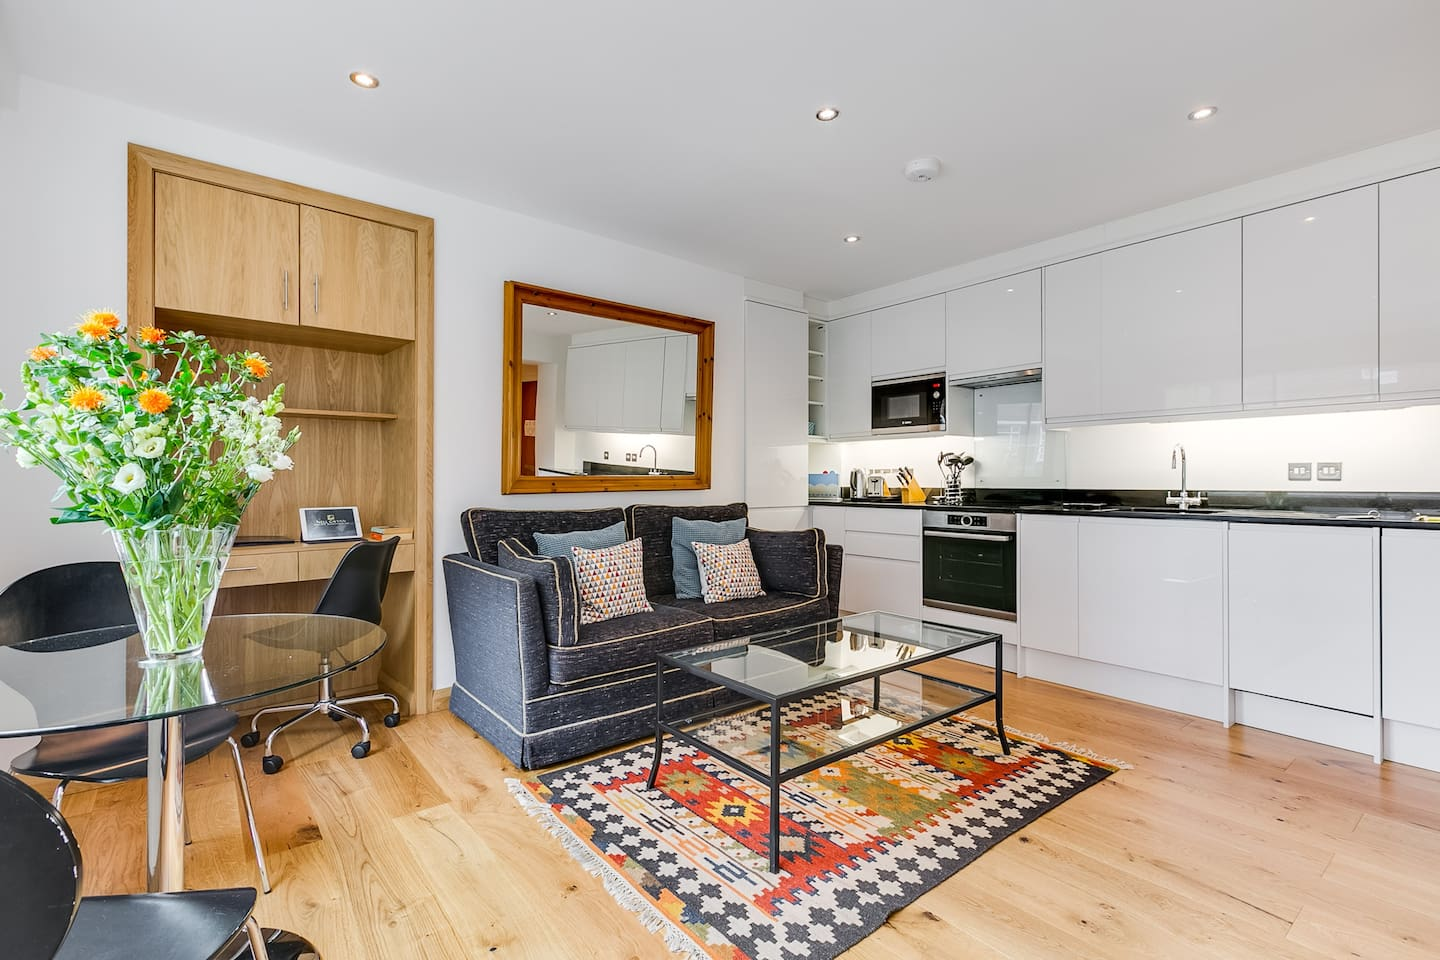 A fabulous 4th floor refurbished in 2018 one bedroom apartment in Nell Gwynn House with generous kitchen and walk in shower. Enjoy this exact apartment and 150mb of free unlimited WiFi with ethernet connection at the desk, luxurious bed linens and fluffy towels and a SMART TV enabling you to log in to your Netflix/Amazon account